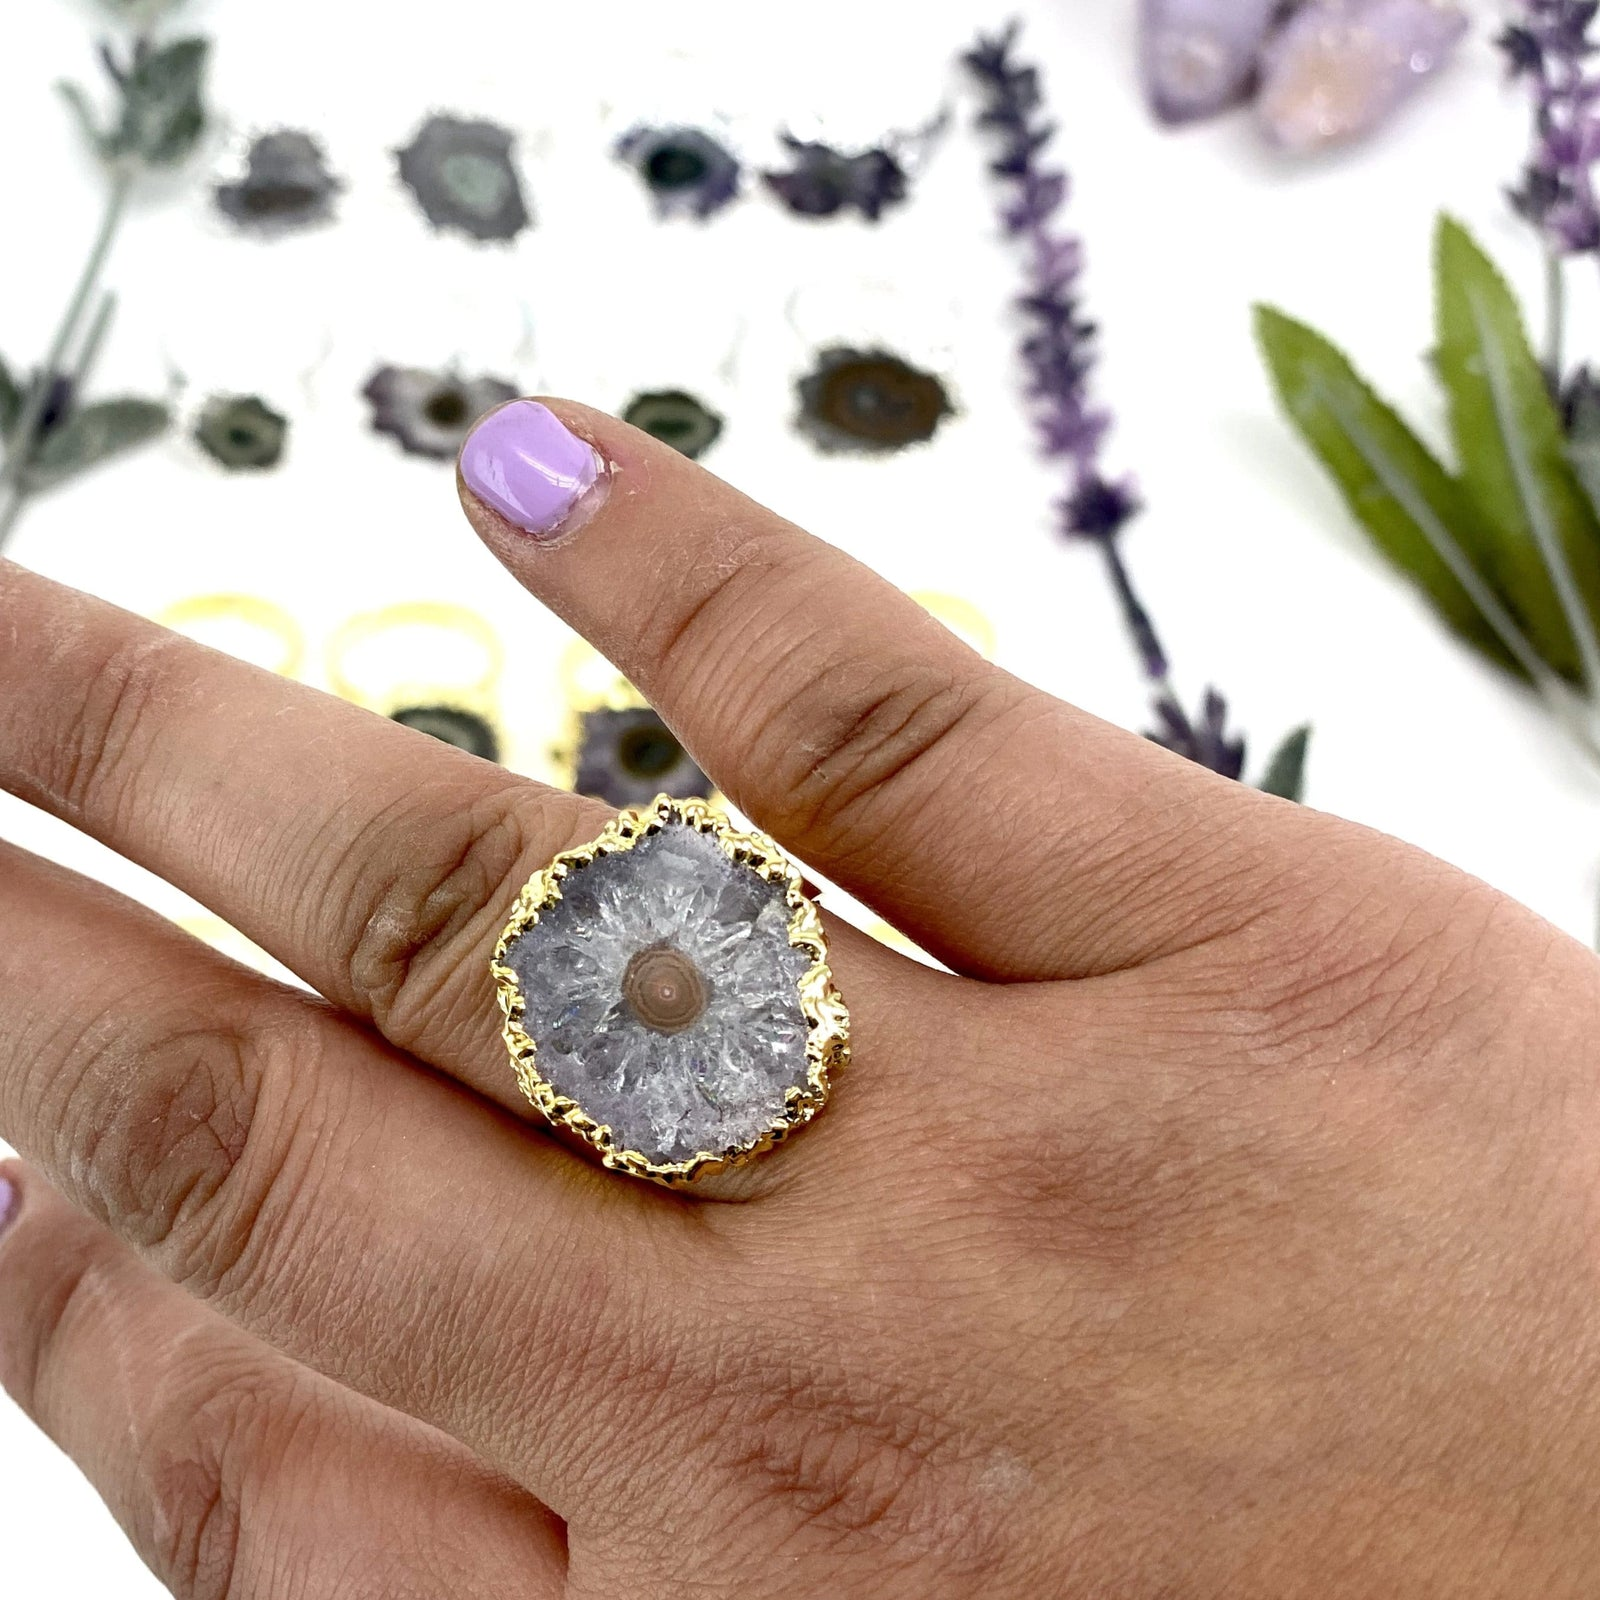 Amethyst Stalactite Adjustable Ring Electroplated 24k Gold or Silver (RK94b23)